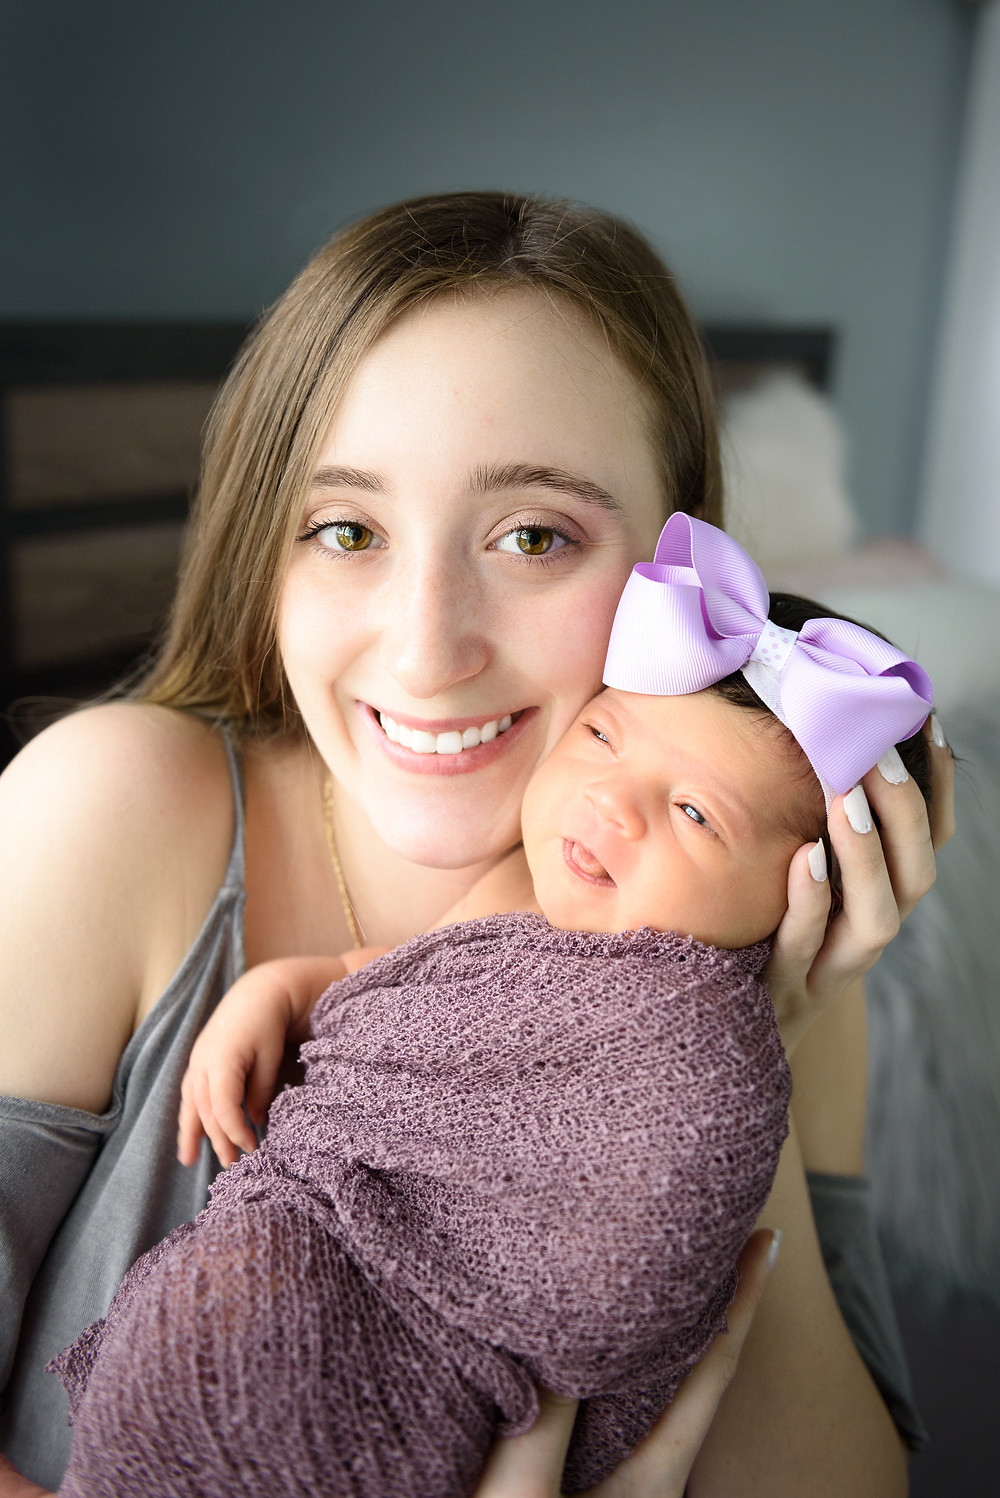 Newborn curious about the world while her mom smiles for a picture